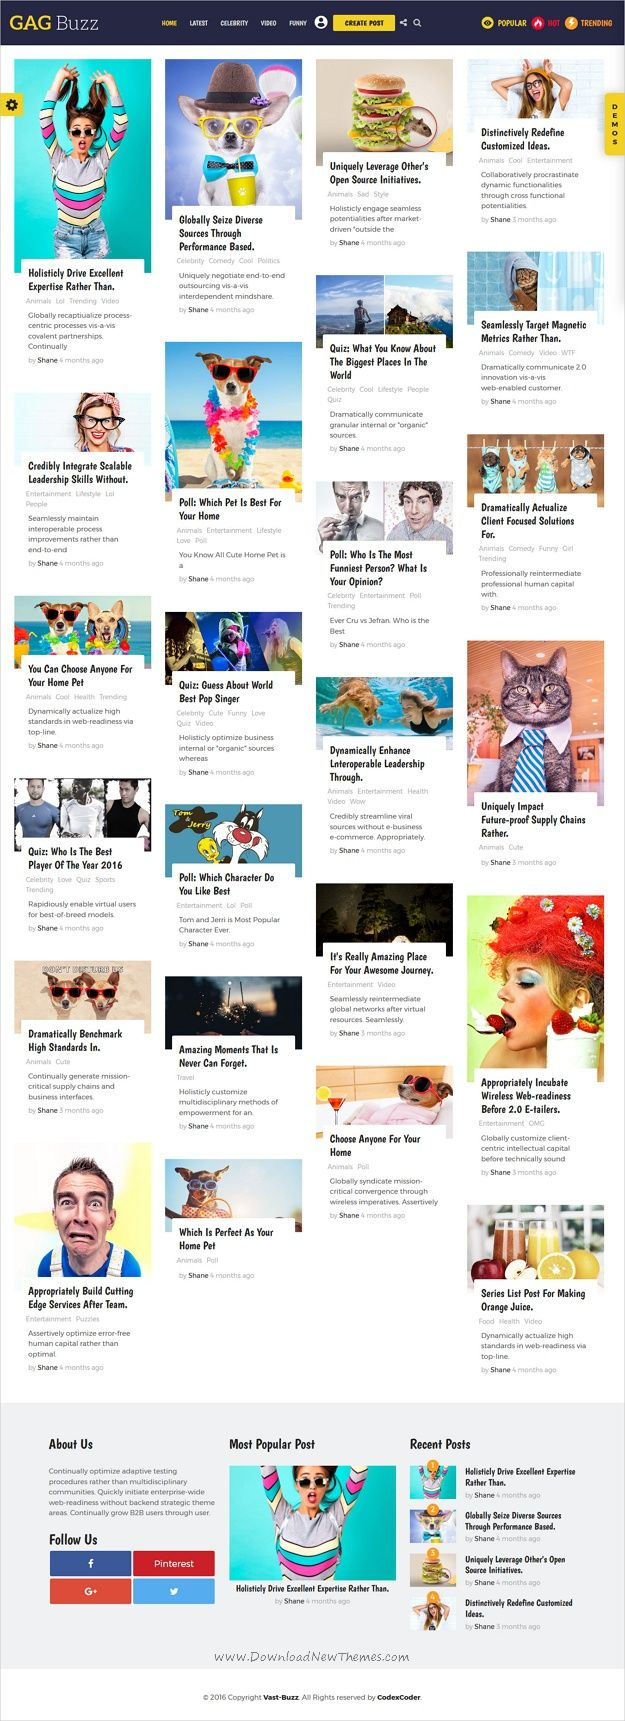 Vast buzz is unique, modern and flat design #WordPress theme for viral news and magazine websites with 9 homepage layouts to create #gag list, #meme, quiz, pool, video, audio, gallery news easily download now➩  https://themeforest.net/item/vast-buzz-viral-buzz-wordpress-theme/19287621?ref=Datasata